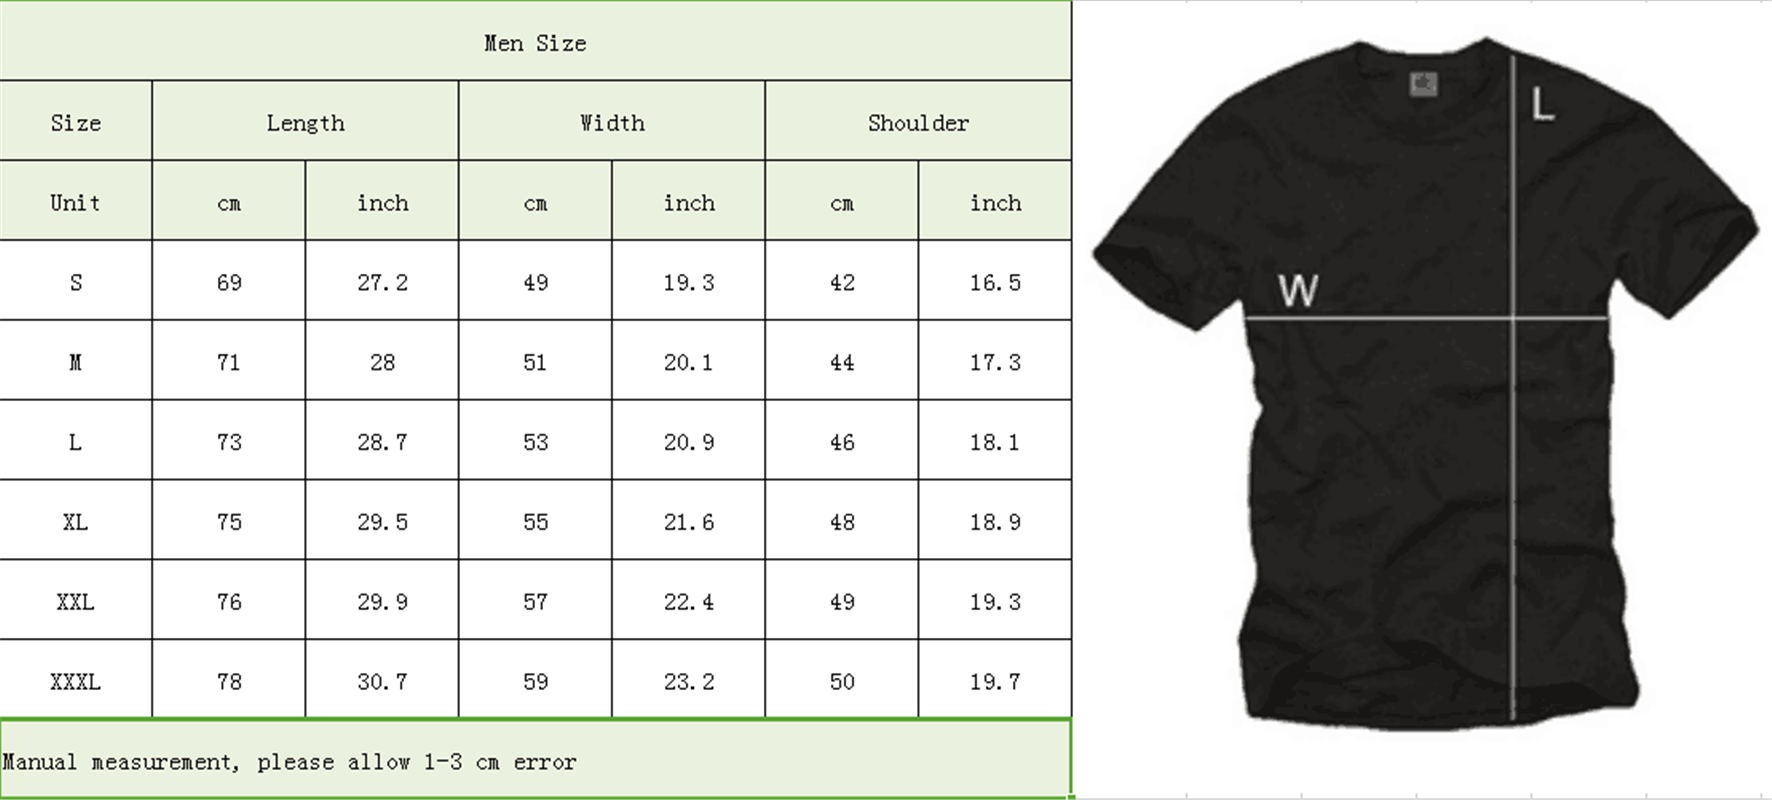 a43f19a8970 ... each T-shirt design. 100% satisfaction guarantee! Please check the Size  Chart photograph carefully and see the detail measurements for an accurate  fit.